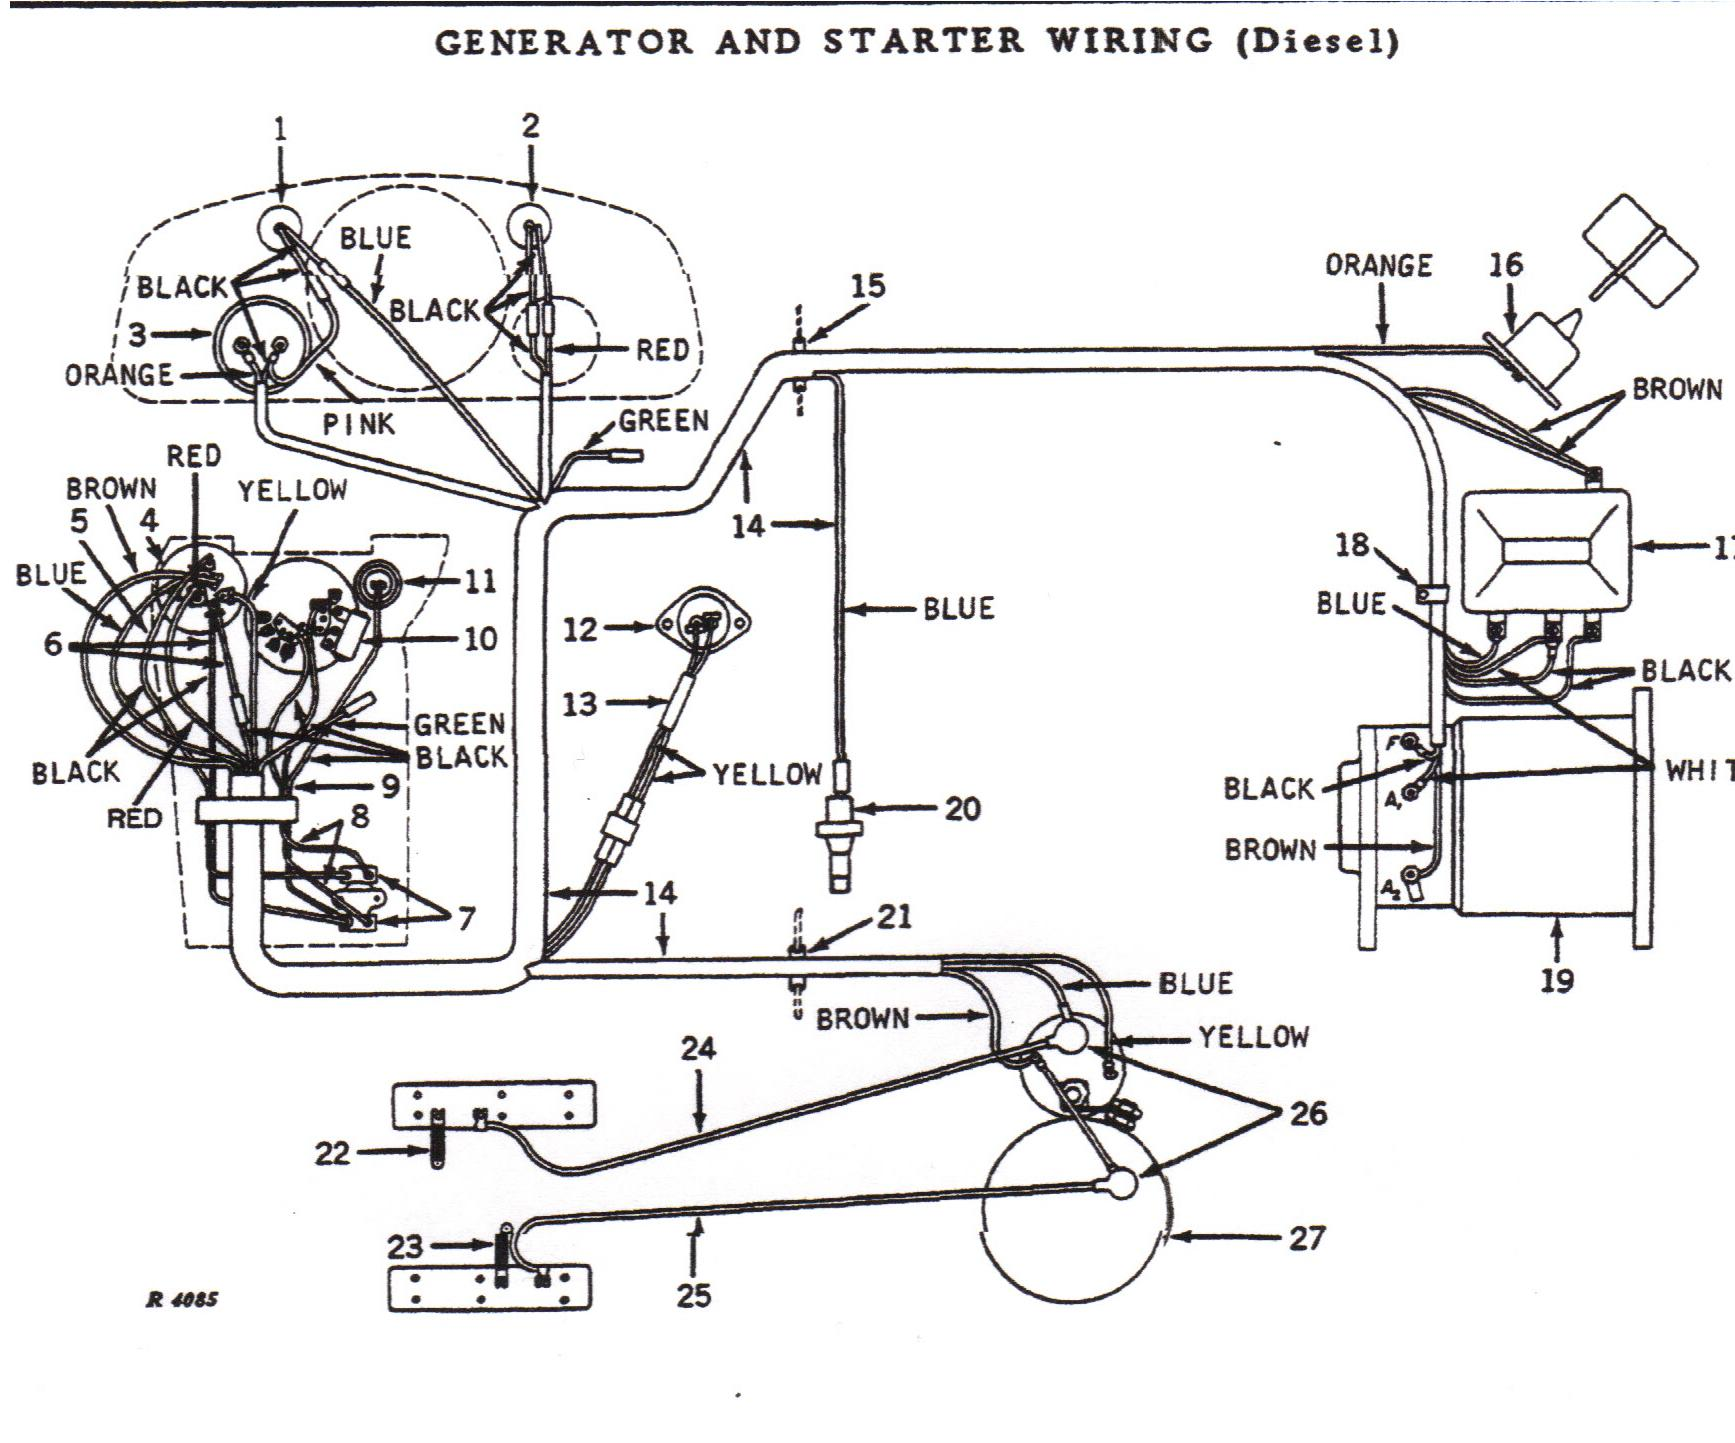 [DIAGRAM_4PO]  XV_2235] Jet Boat Wiring Diagram As Well John Deere 1020 Wiring Diagram  Further Wiring Diagram | Wiring Diagram For A John Deere 4430 |  | Wedab Wigeg Mohammedshrine Librar Wiring 101